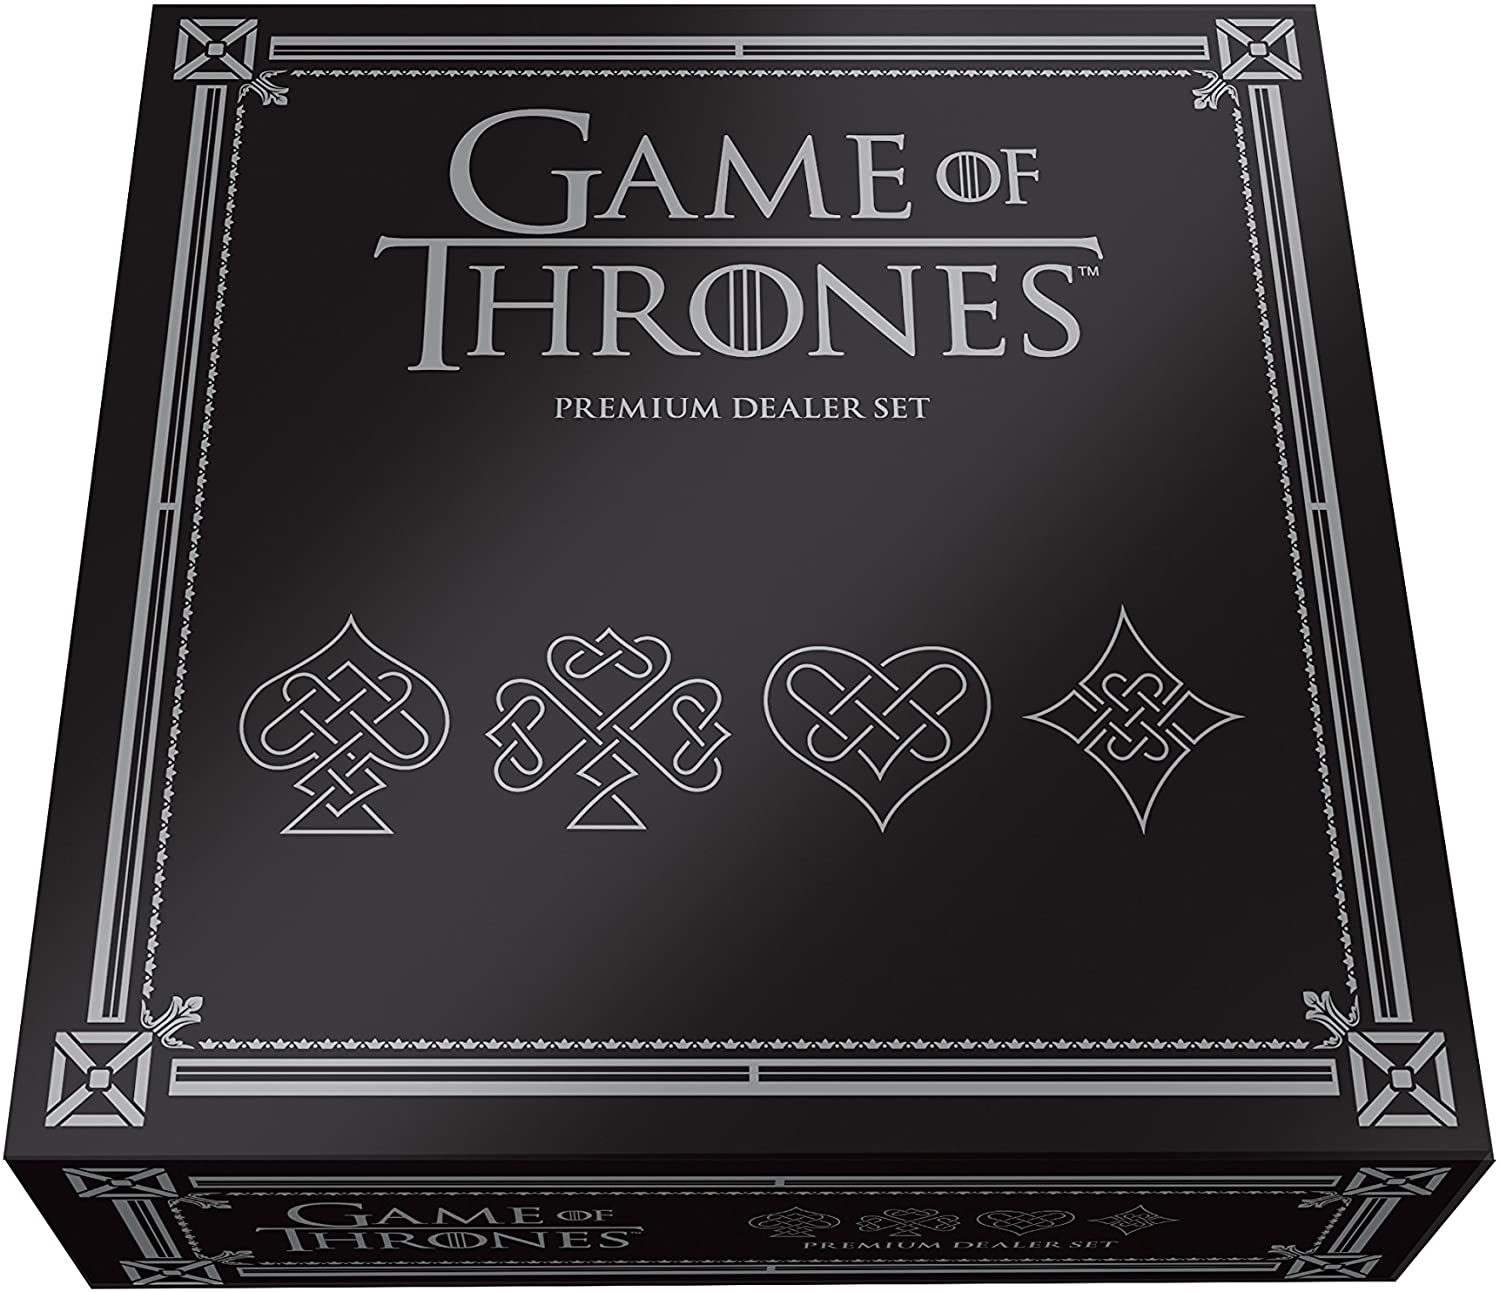 GAME OF THRONES PREMIUM DEALER PLAYING CARD SET